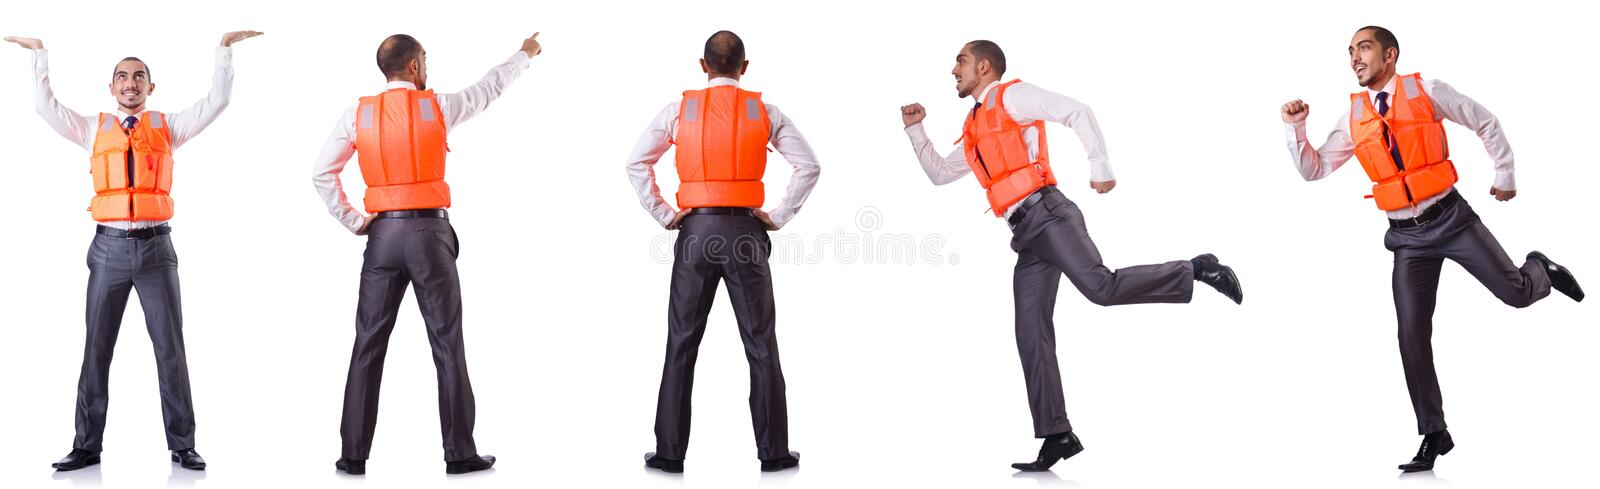 The man in life jacket isolated on white. Man in life jacket isolated on white stock photos